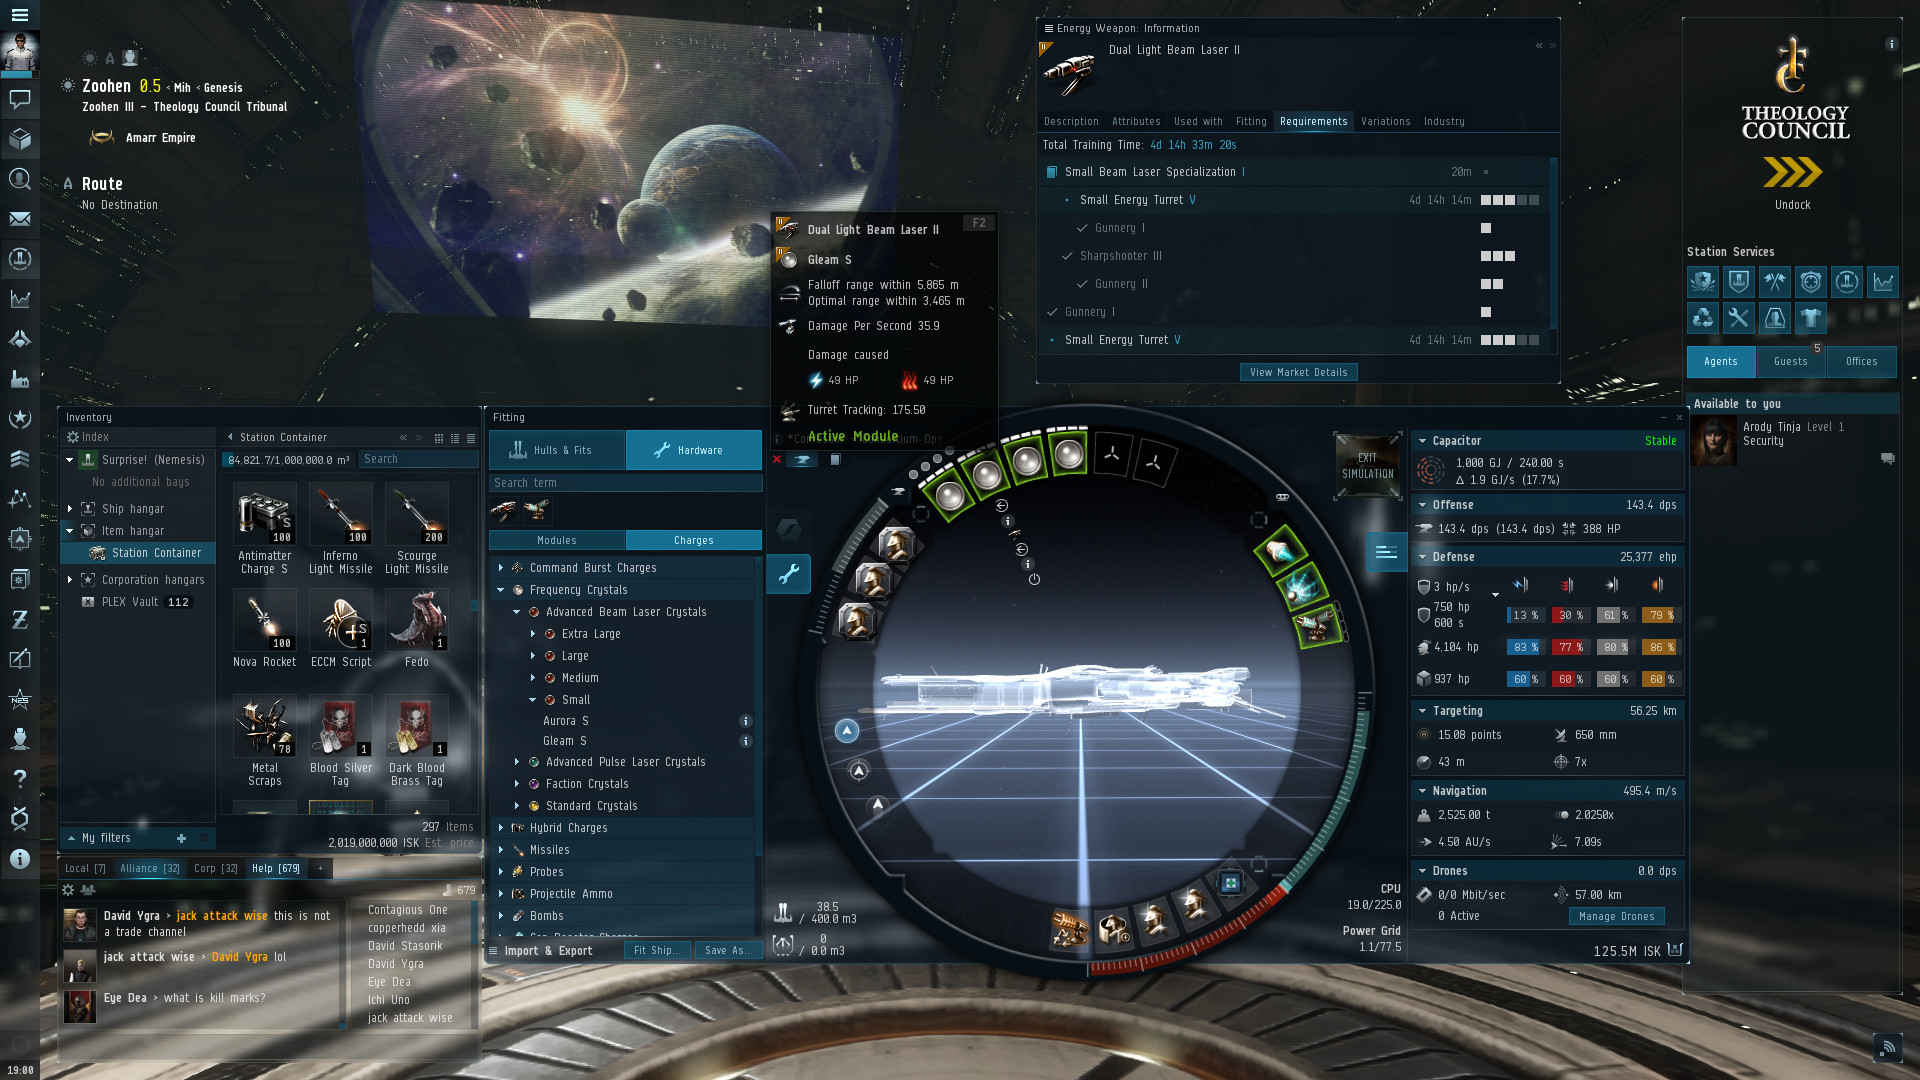 EVE Online System Requirements - Can I Run It? - PCGameBenchmark